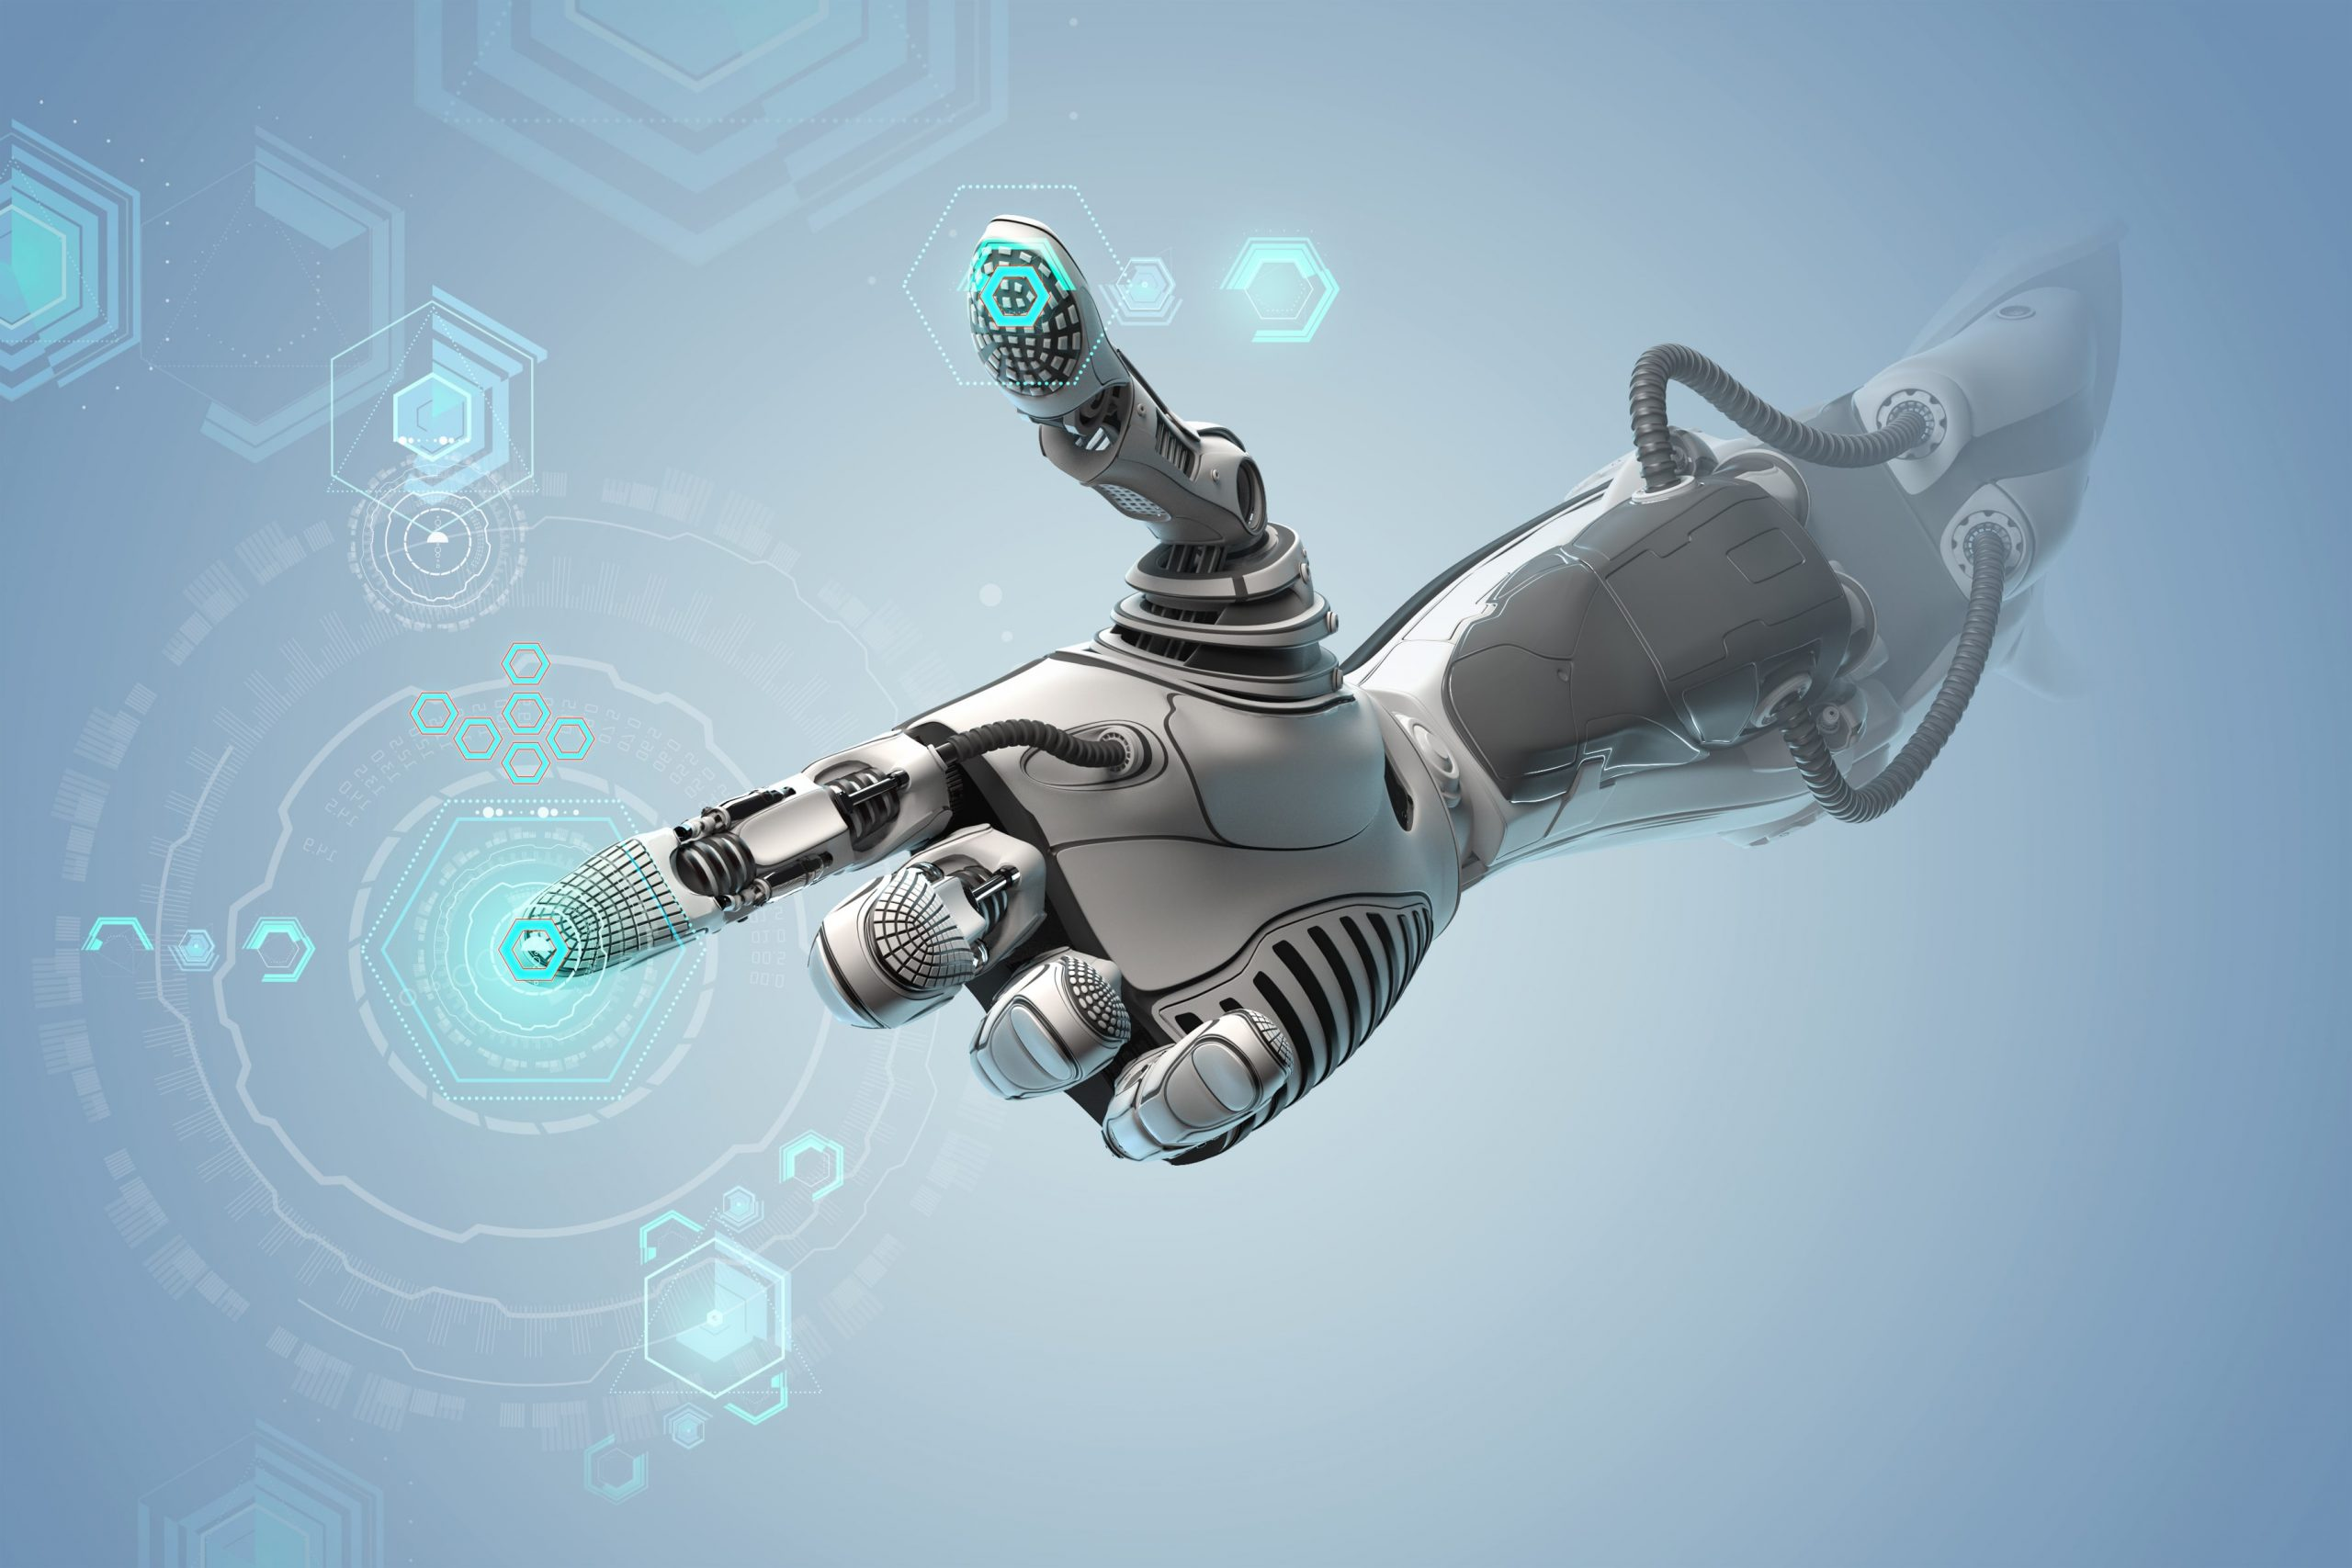 IMM ACCELERATING THE DIGITAL TRANSFORMATION THROUGH ROBOTIC PROCESS AUTOMATION SOLUTIONS